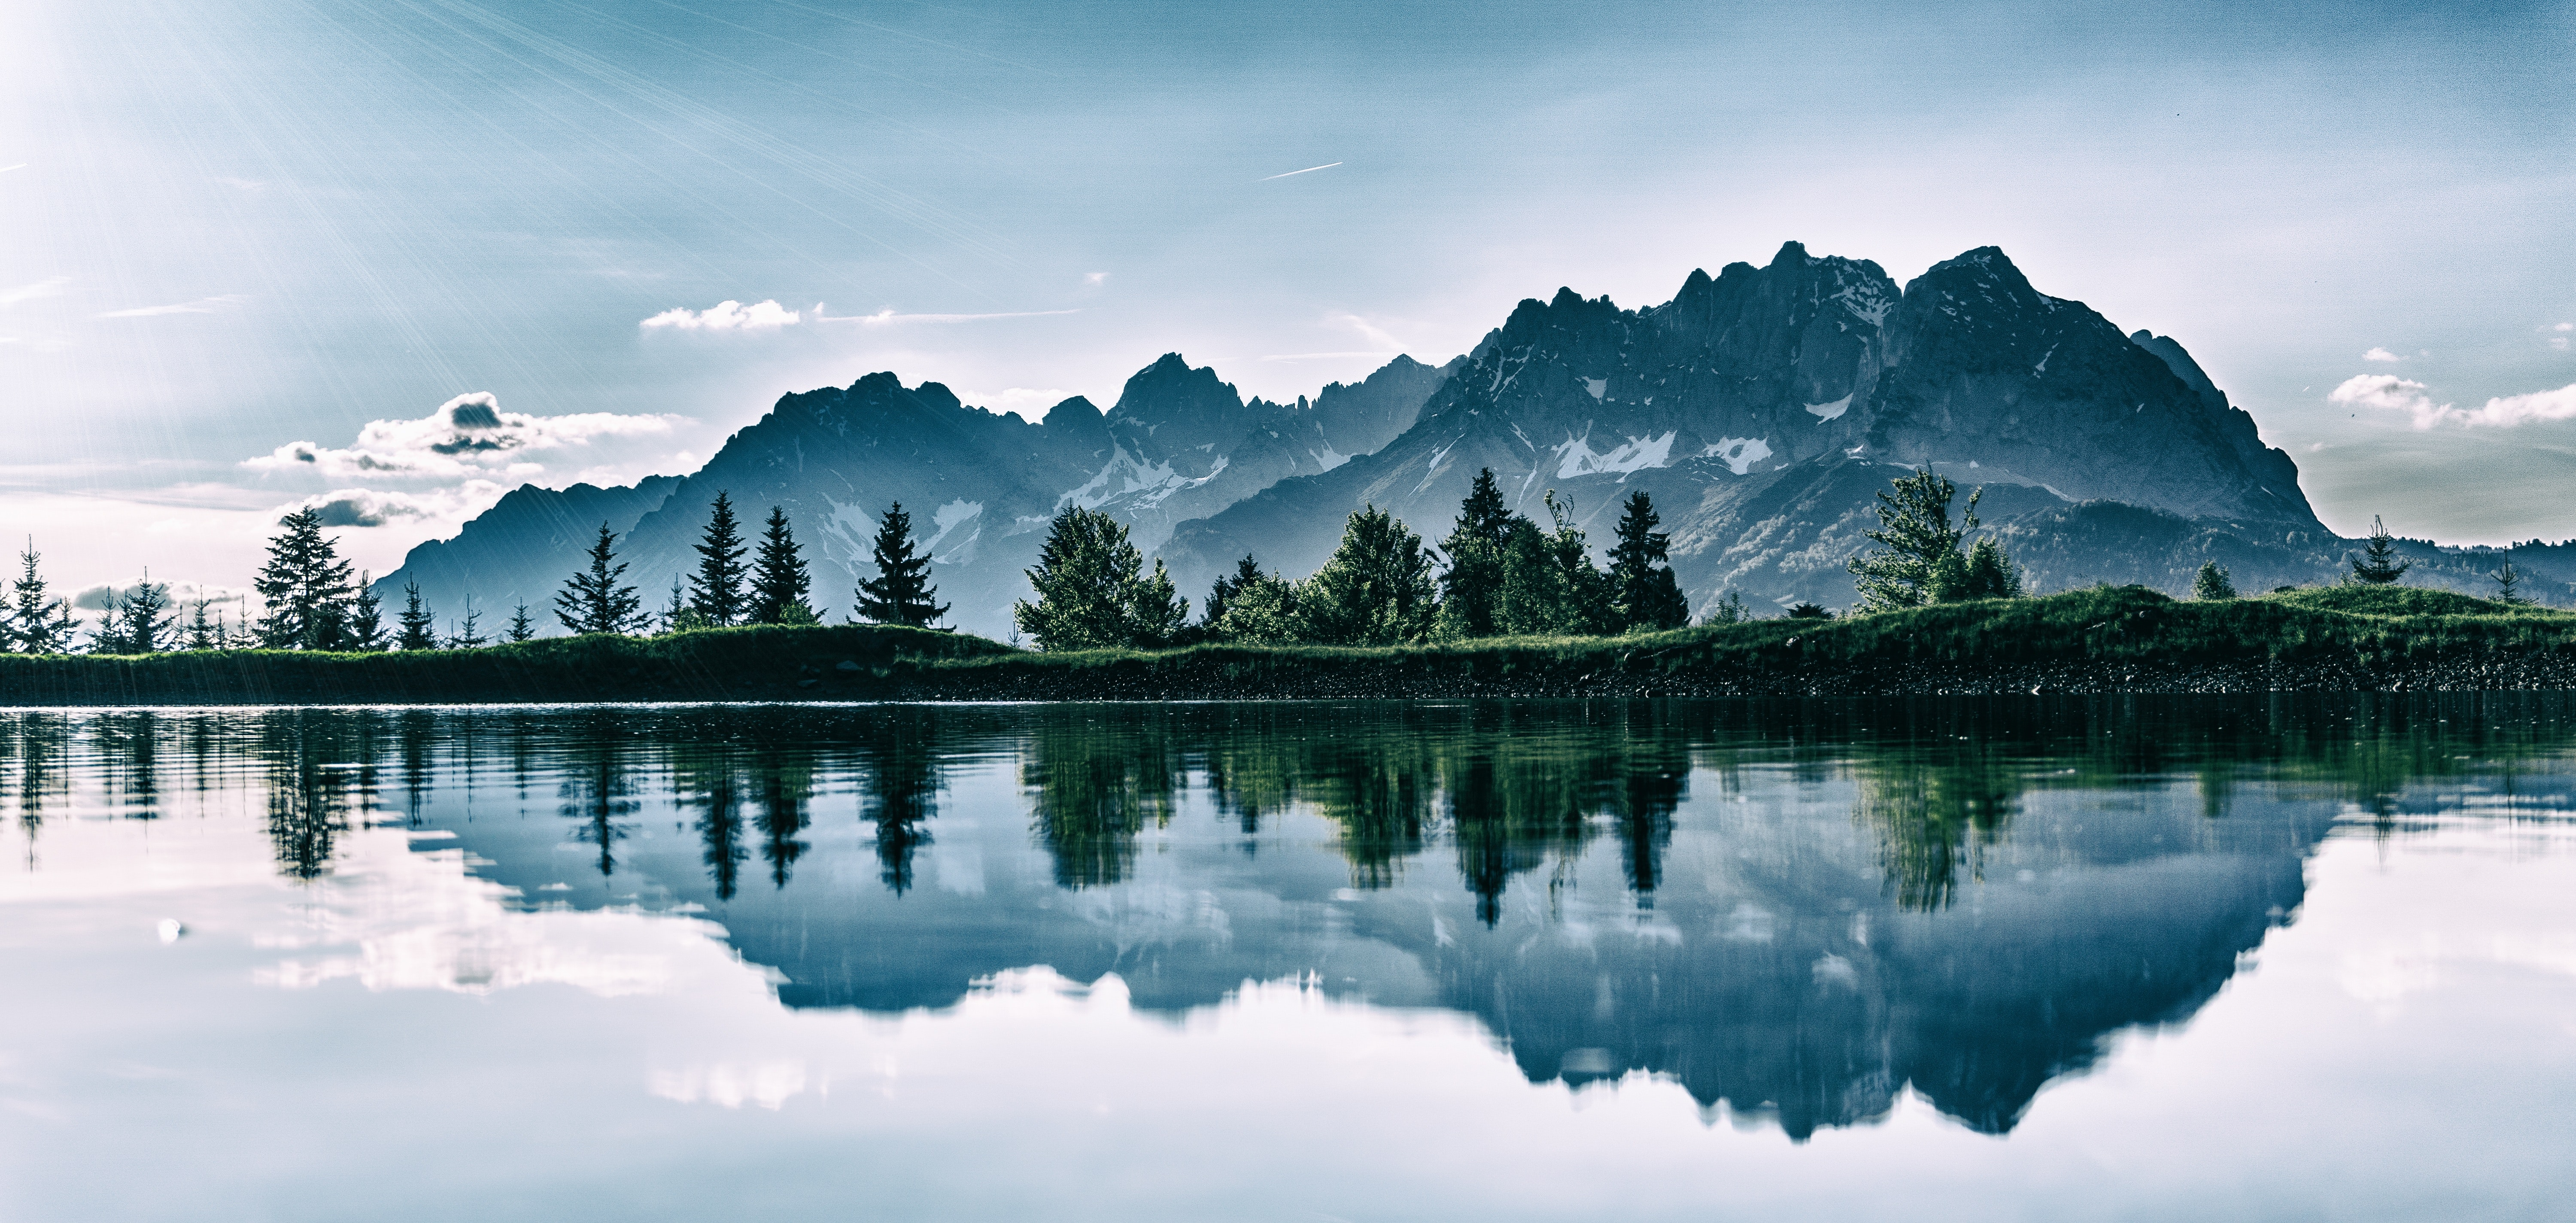 photo of a still lake under snowy mountains